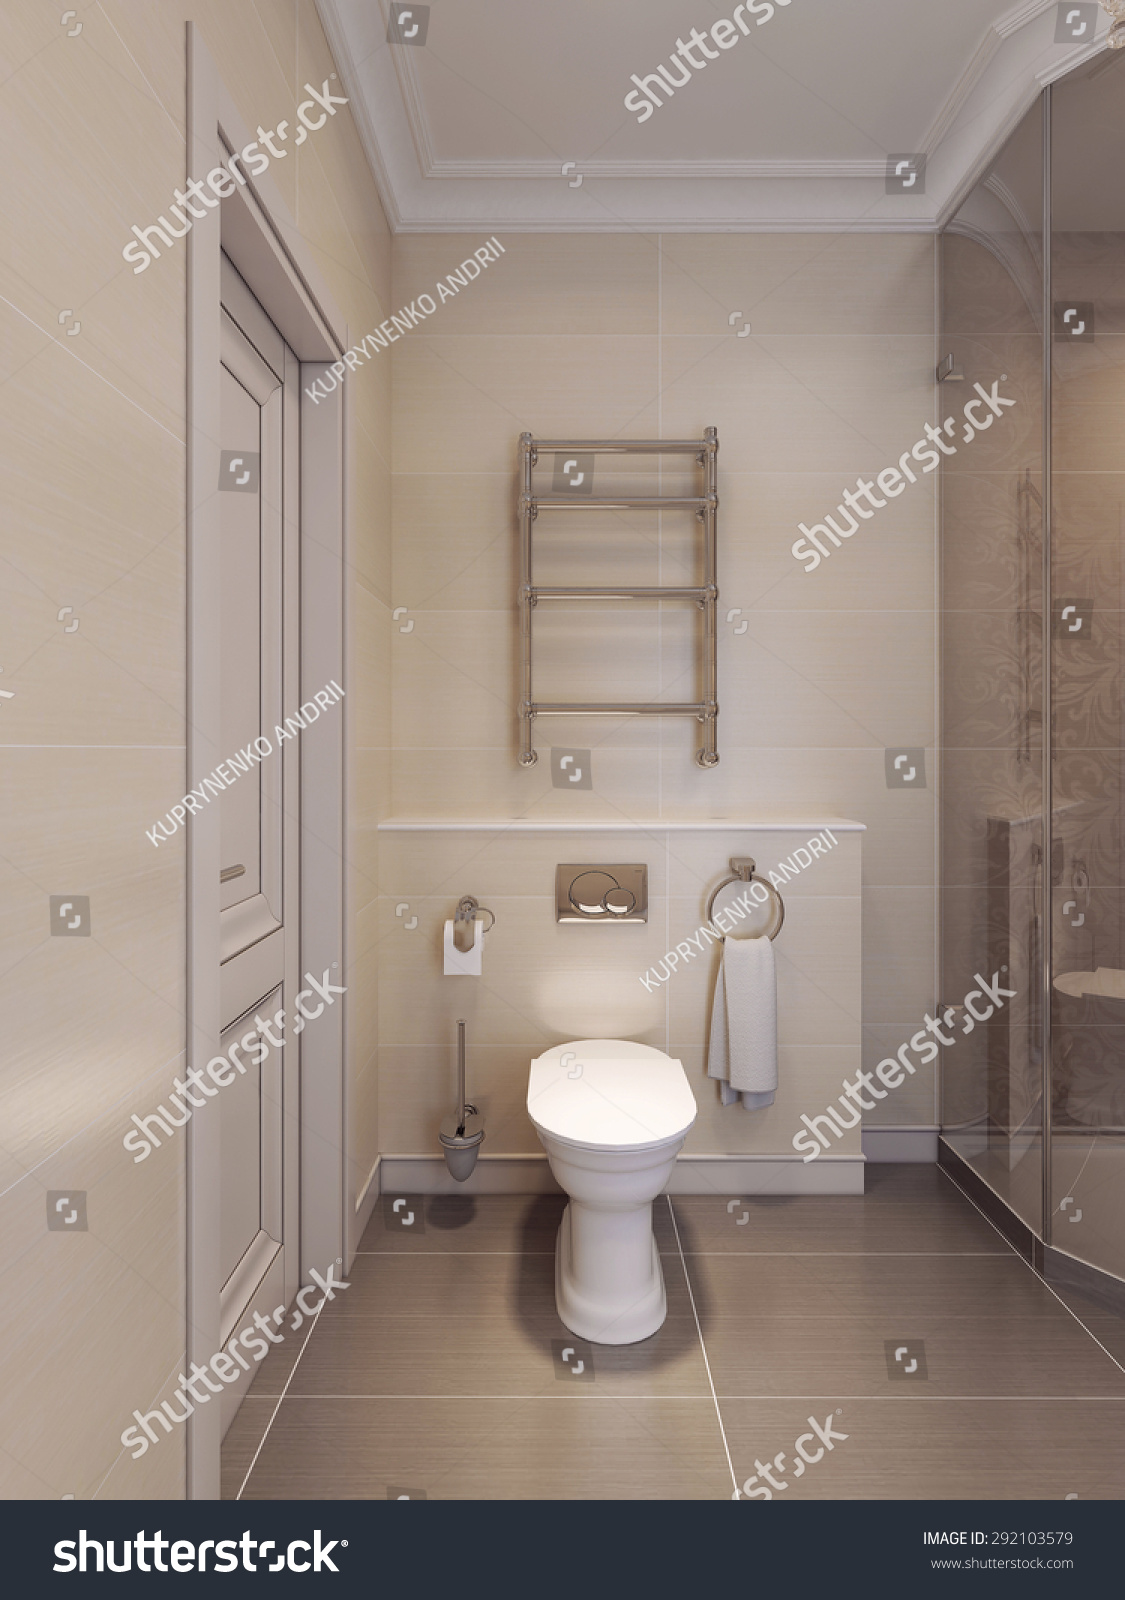 wc art deco style brown beige stock illustration 292103579 shutterstock. Black Bedroom Furniture Sets. Home Design Ideas